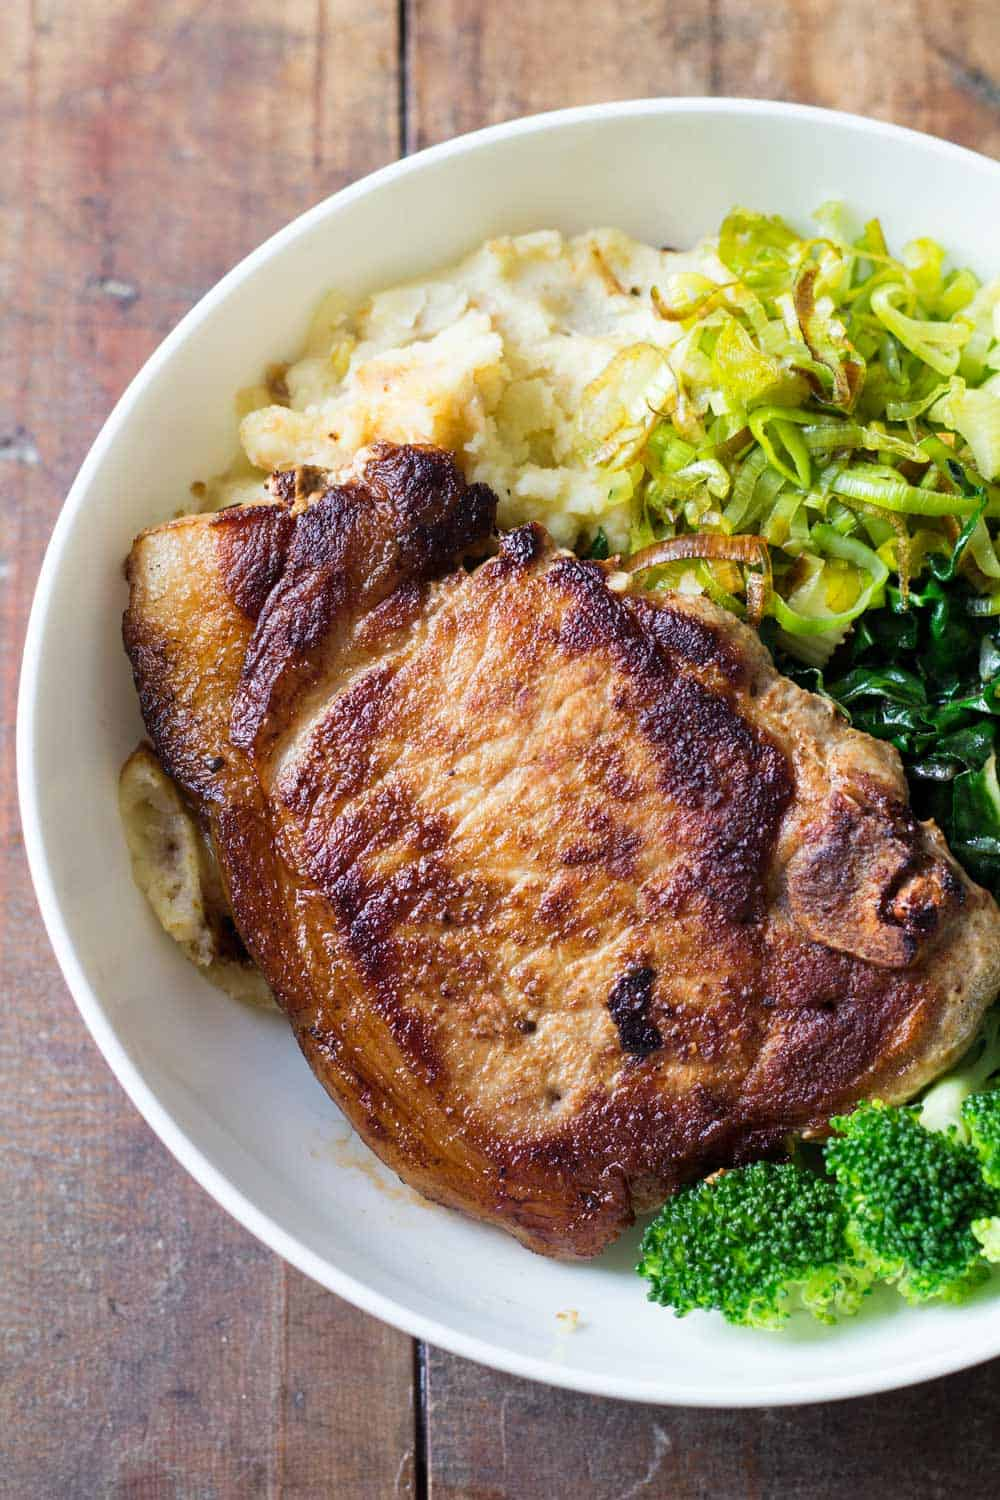 Perfect Pork Chops on mashed potatoes and vegetables